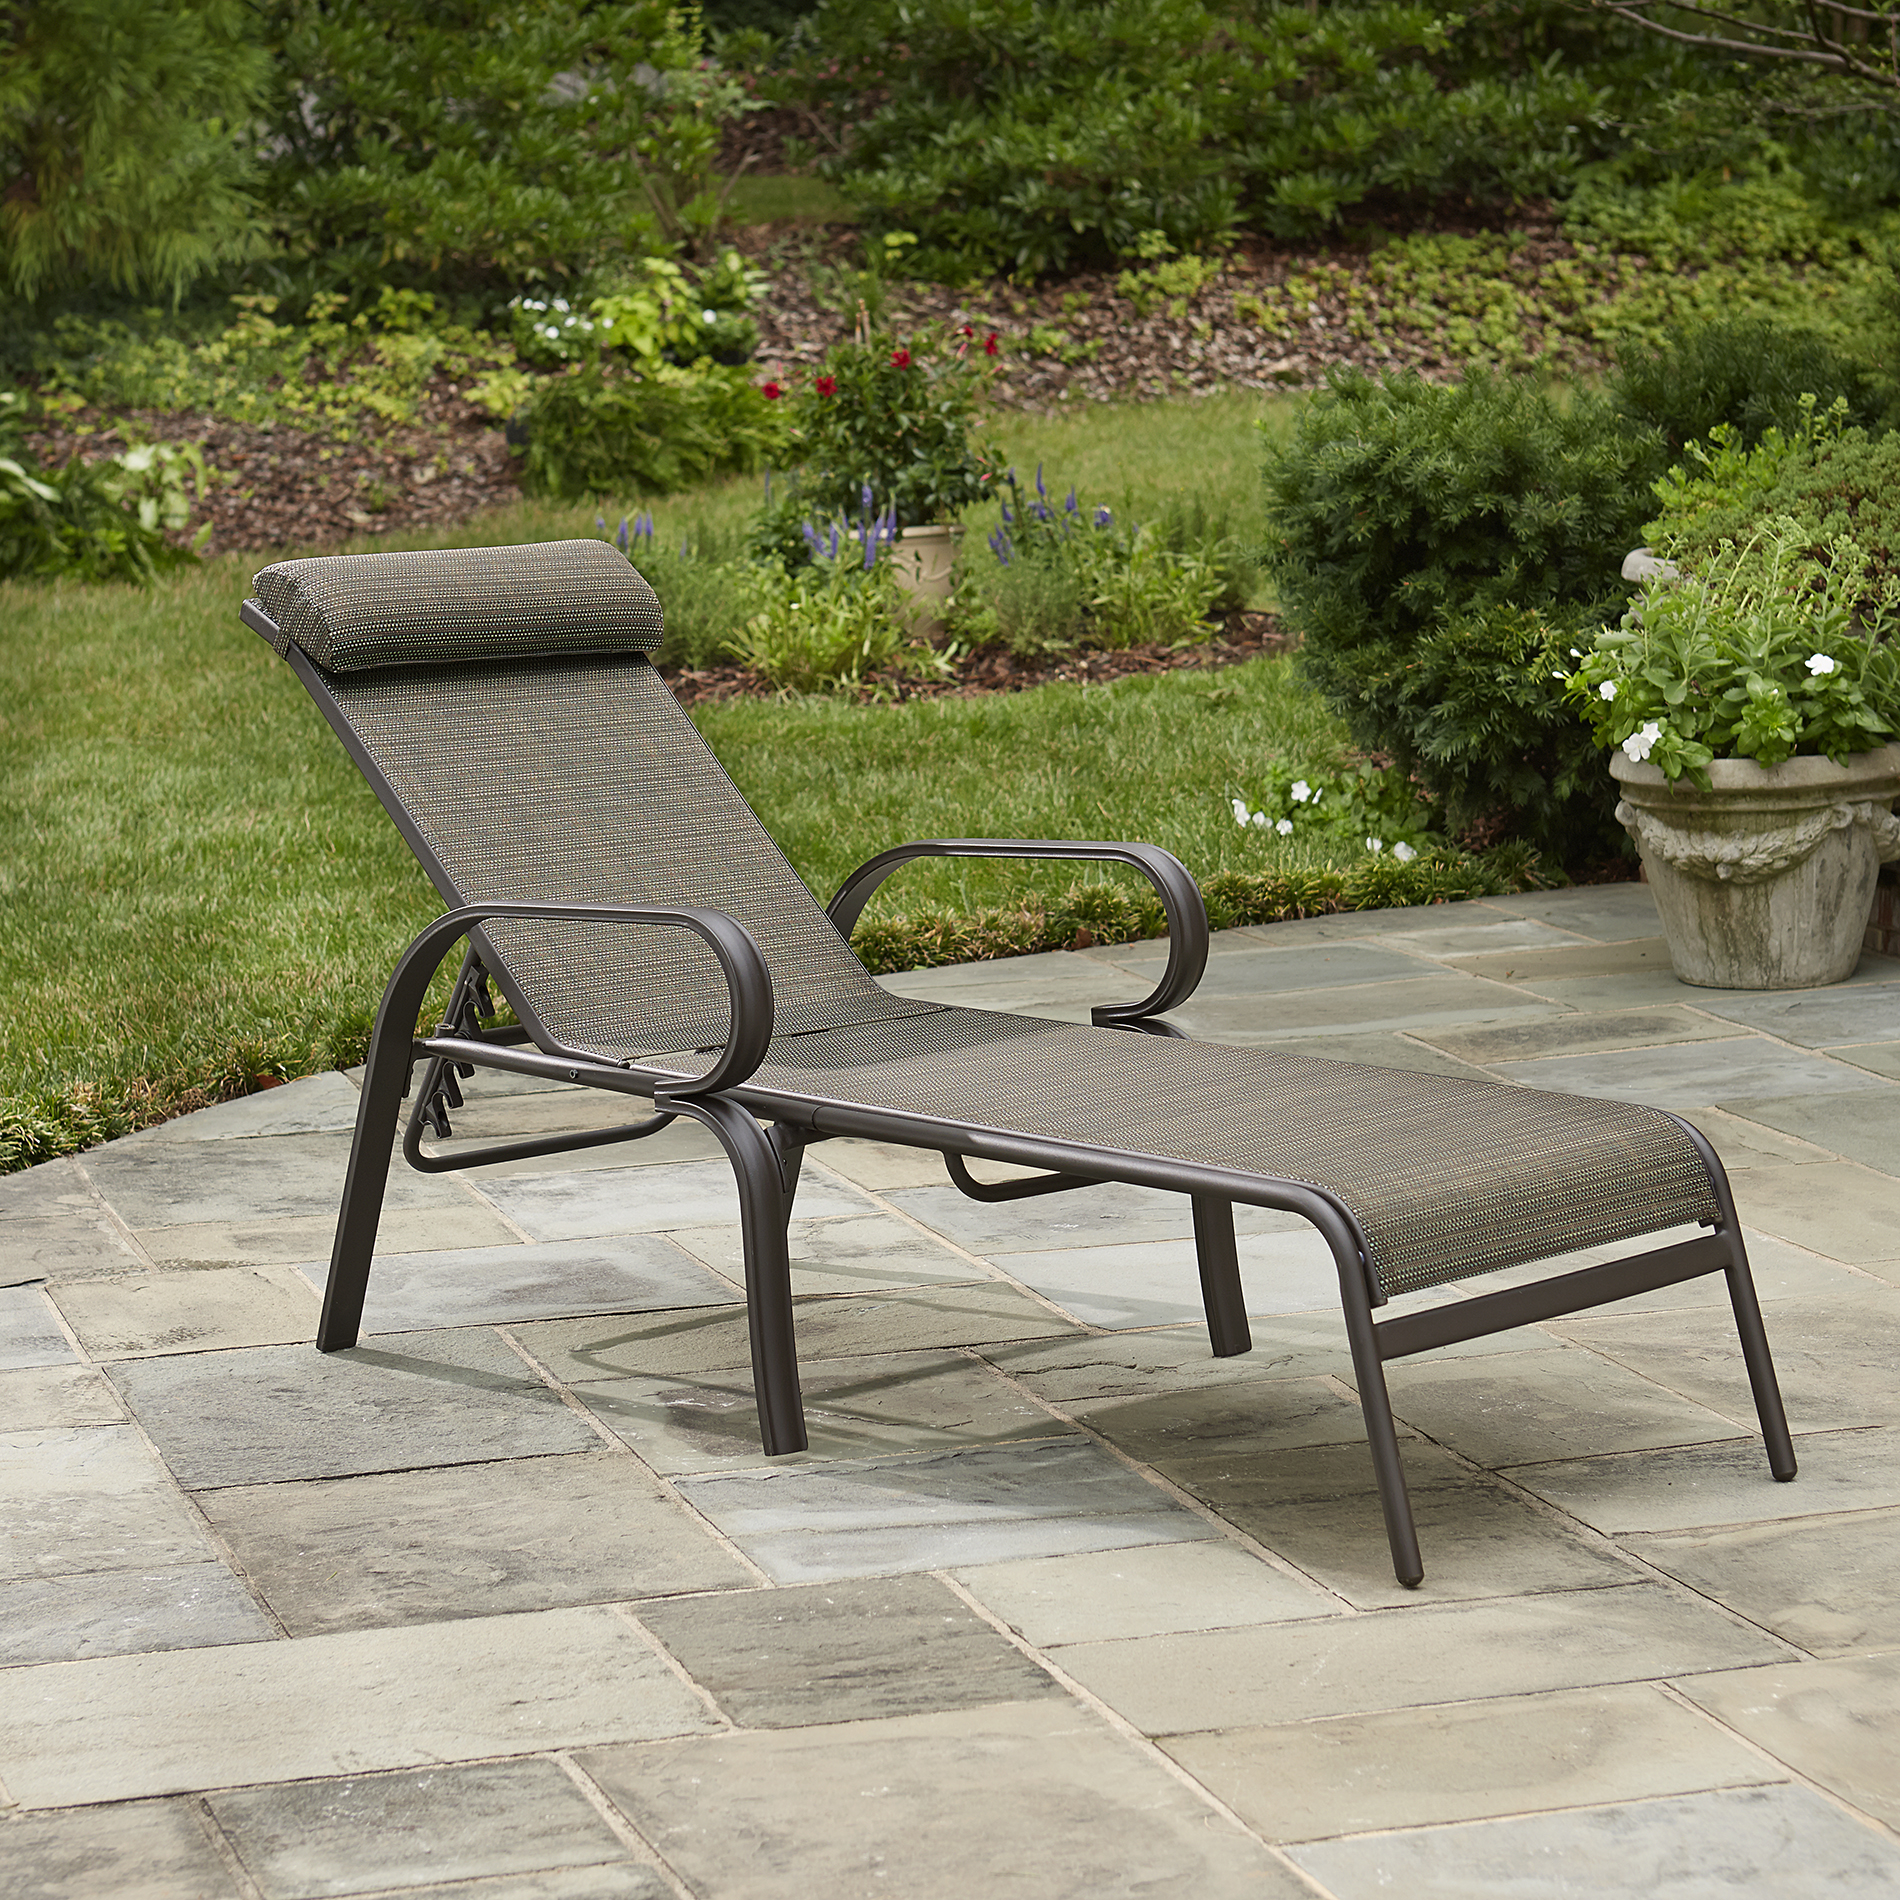 Jaclyn Smith Today Outdoor Furniture